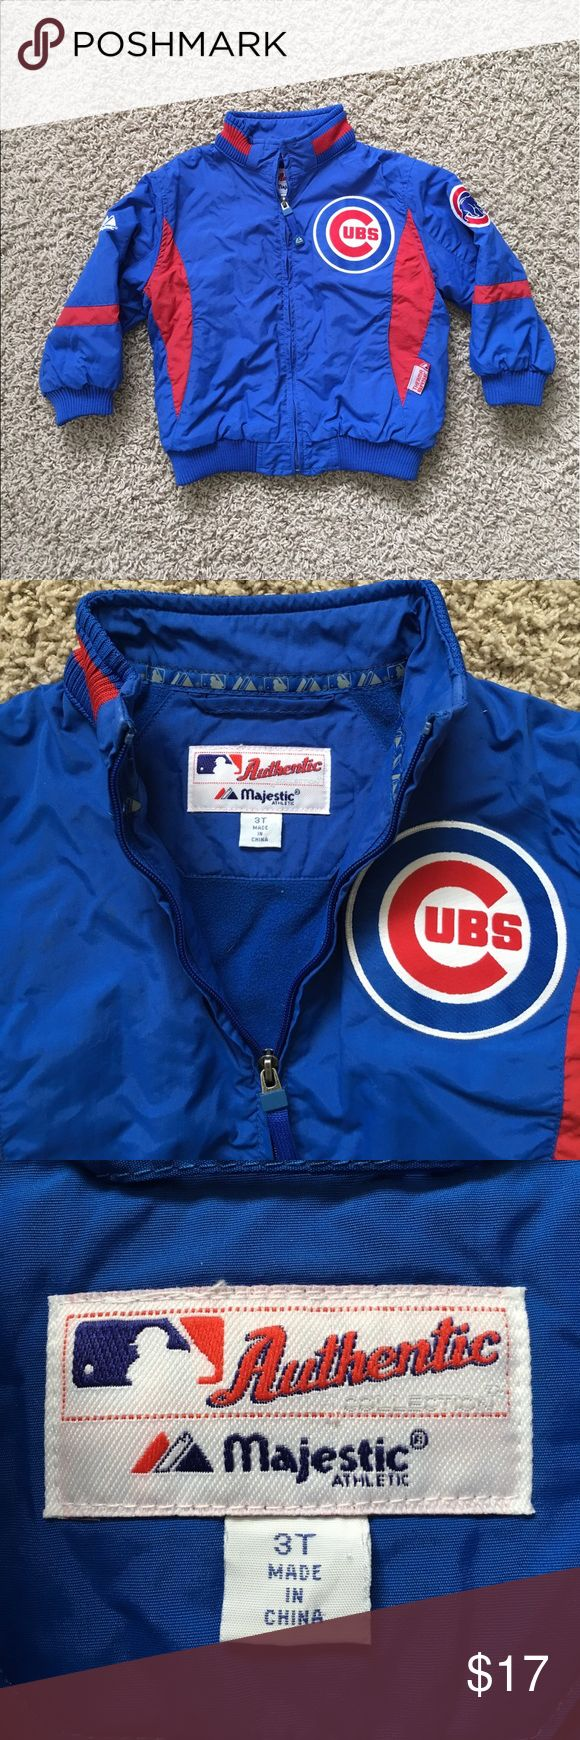 Chicago Cubs winter jacket World Series Chicago Cubs winter jacket, size 3T, by MLB Majesctic.  Item is free of rips, stains and other major flaws.  Considered in EUC. ALL OF OUR ITEMS COME FROM A SMOKE FREE HOME ***visit our eBay store, Joebooh2 resale, where we combine shipping on multiple purchases***  Bid with confidence as we have a perfect 100% feedback rating dating back to 1999. Majestic Jackets & Coats